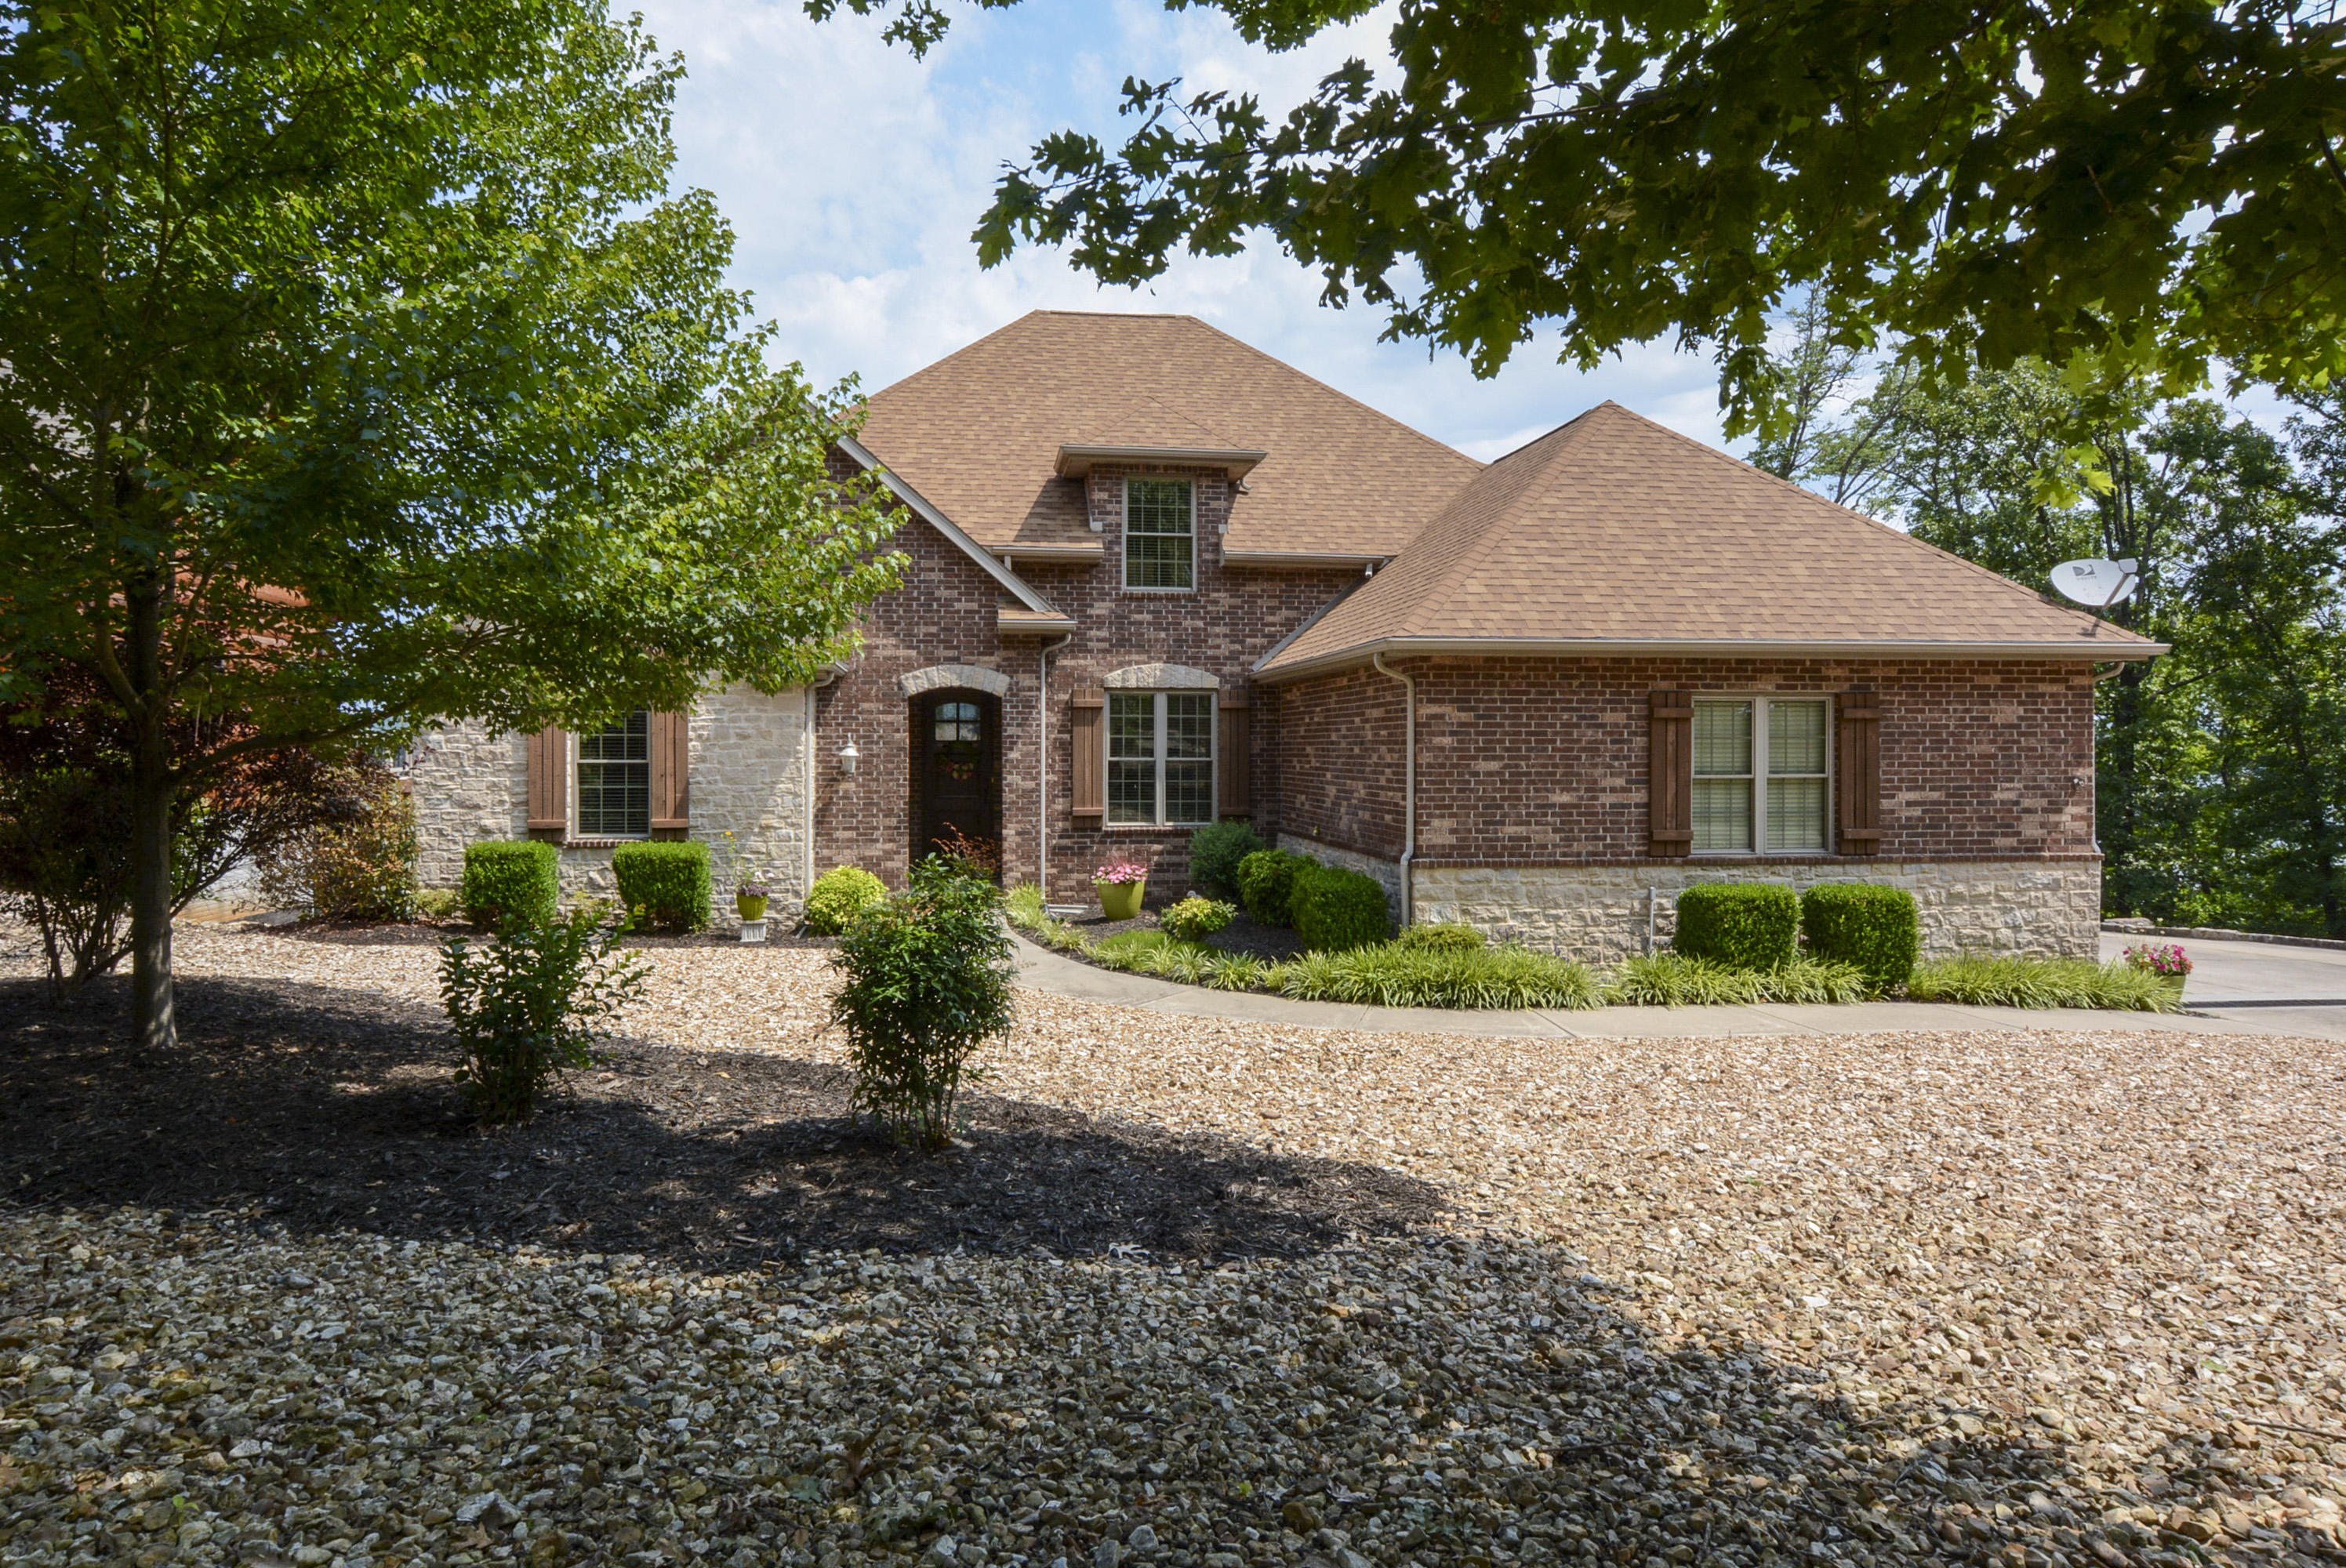 407 Eagles Point Lane Shell Knob, MO 65747